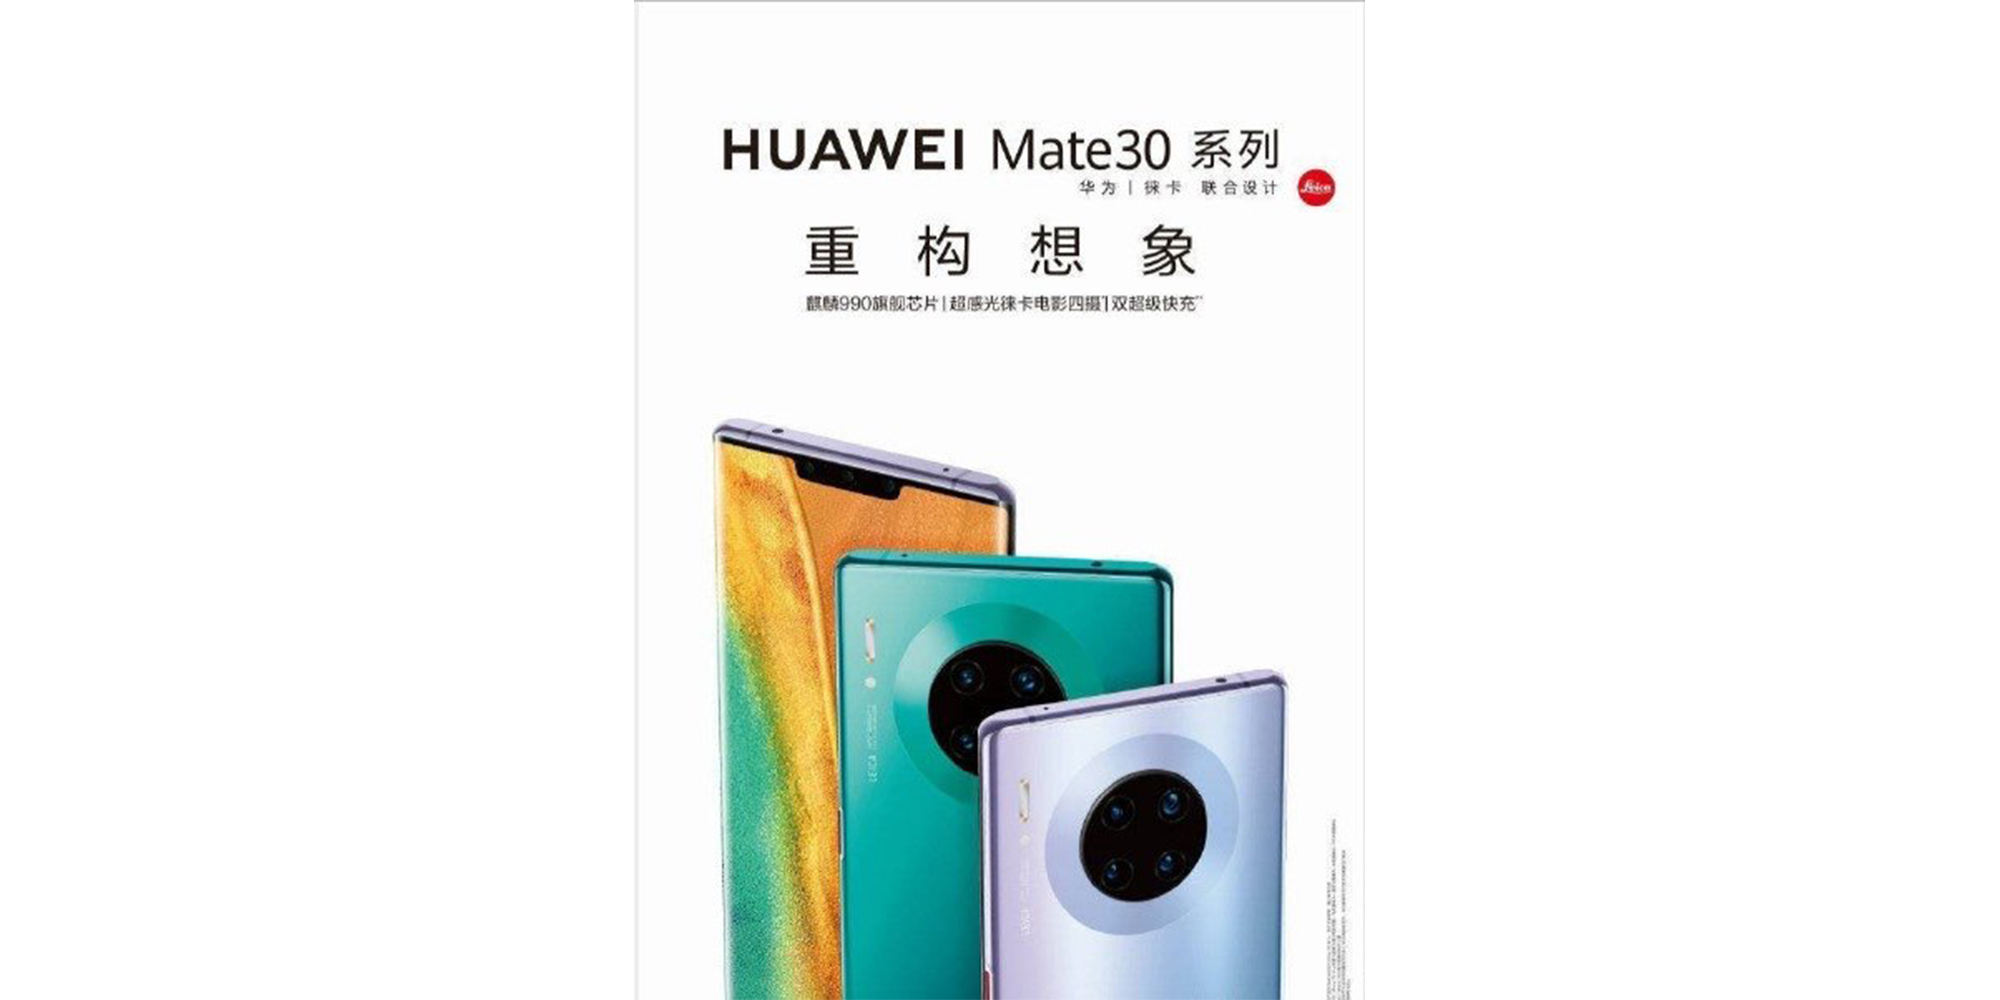 Google says Huawei Mate 30 can't use licensed Android